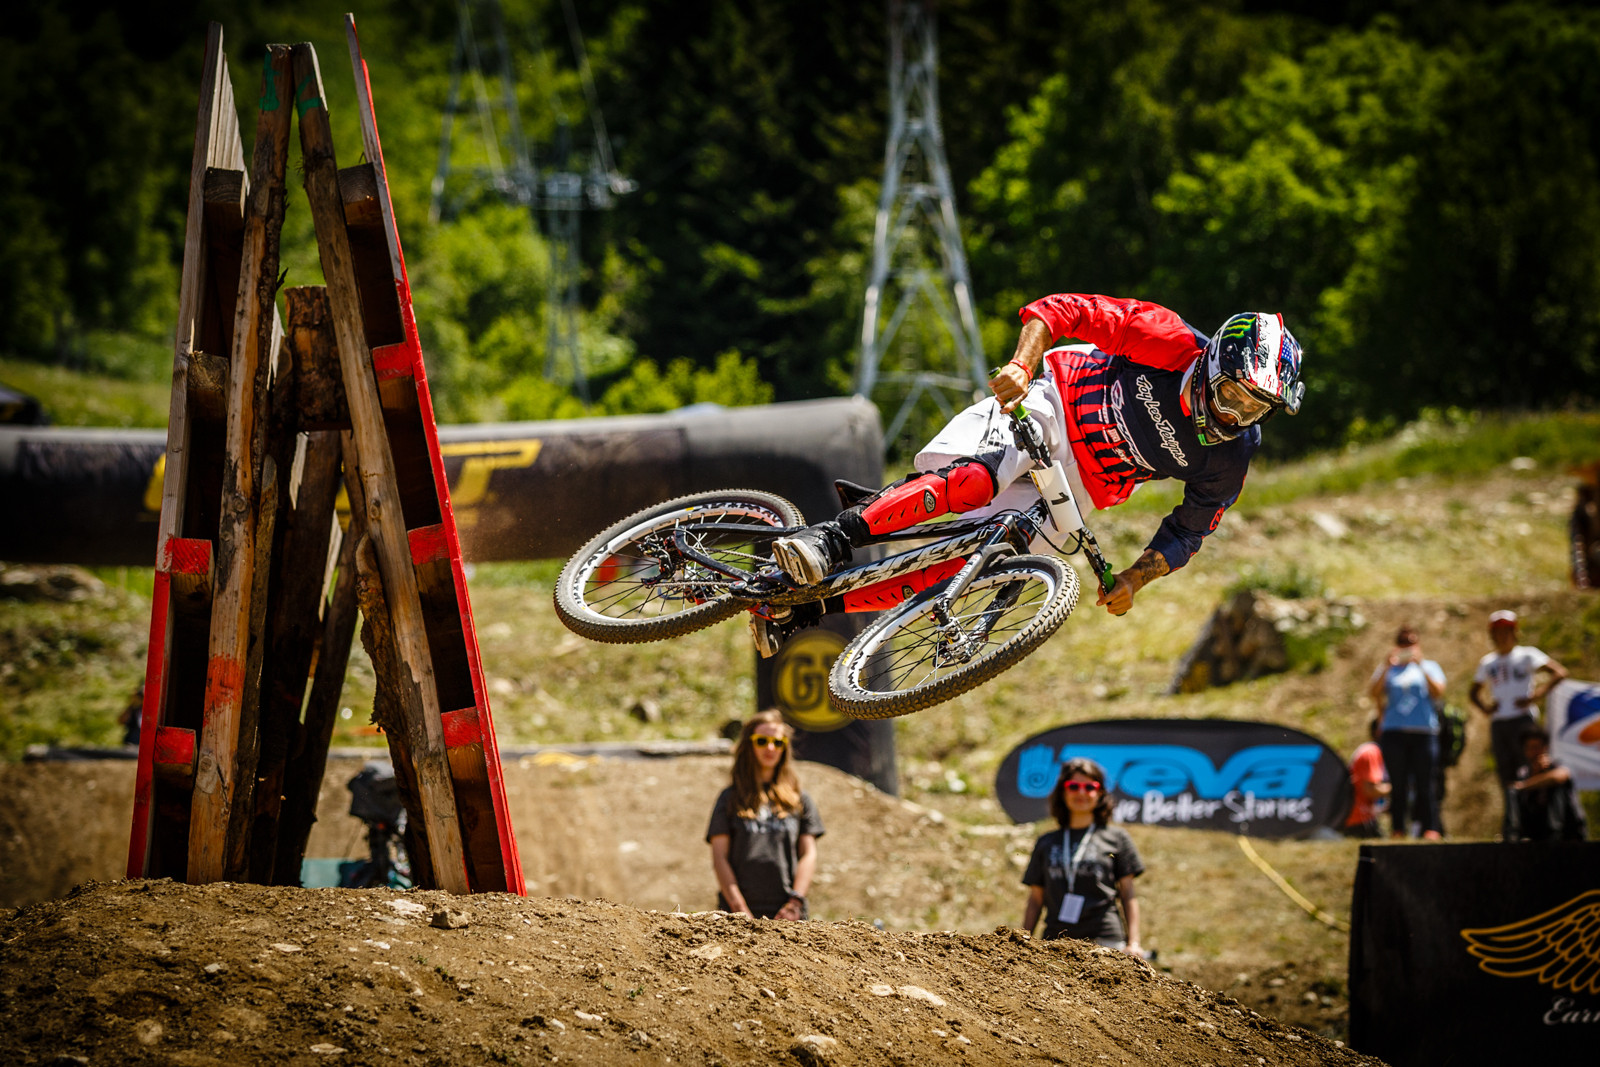 Cam Zink, Crankworx L2A Dual Speed Style - Crankworx L2A Speed and Style Photos and Results - Mountain Biking Pictures - Vital MTB